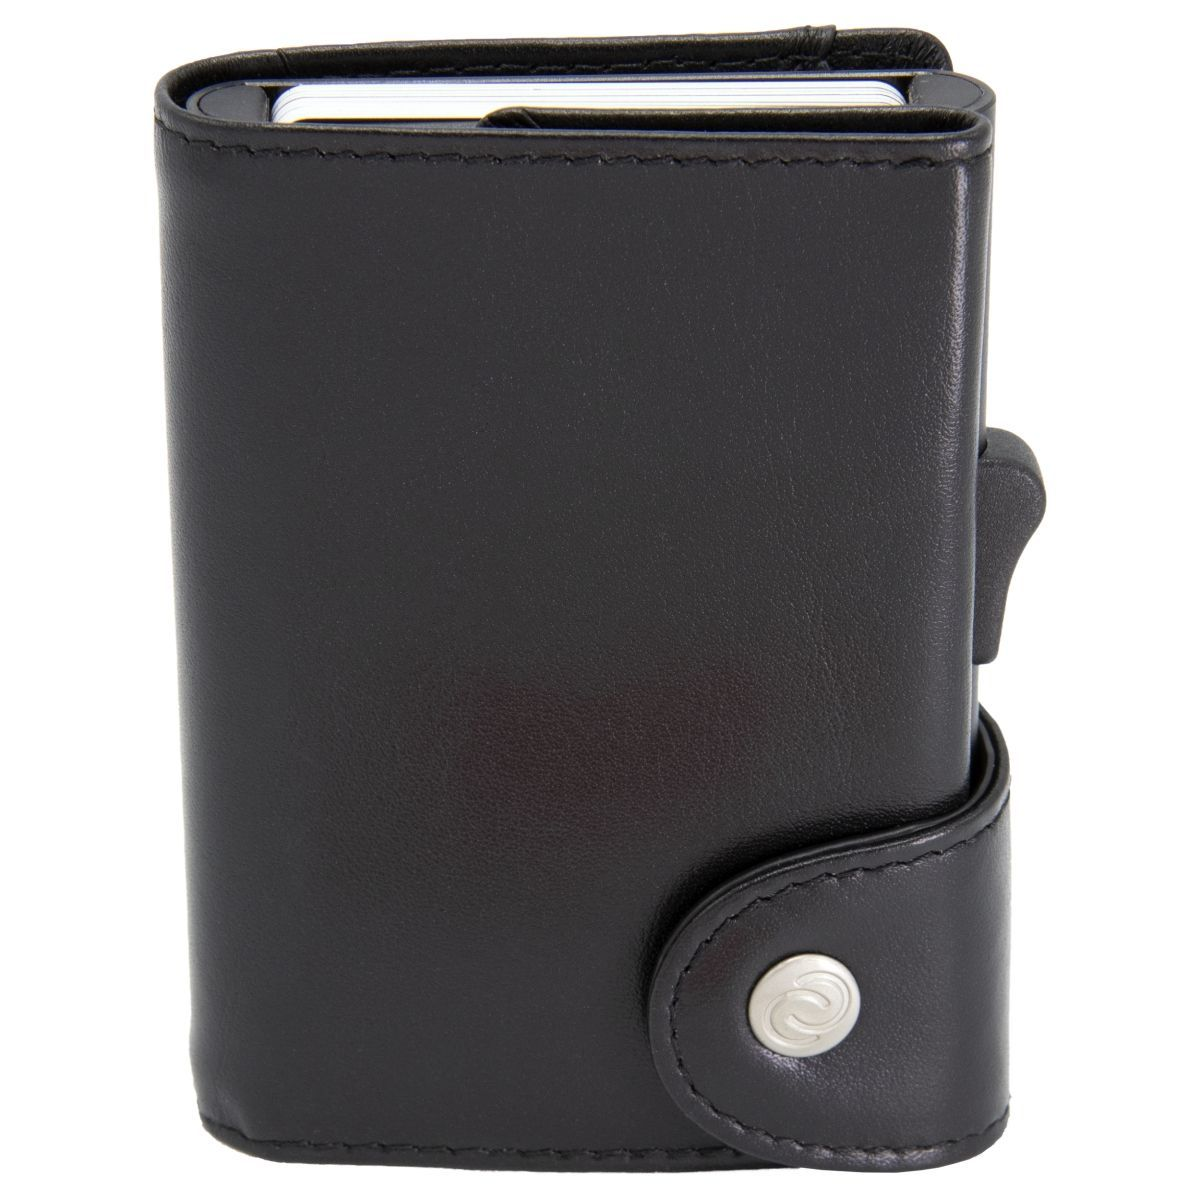 C-Secure XL Aluminum Card Holder with Genuine Leather - Black